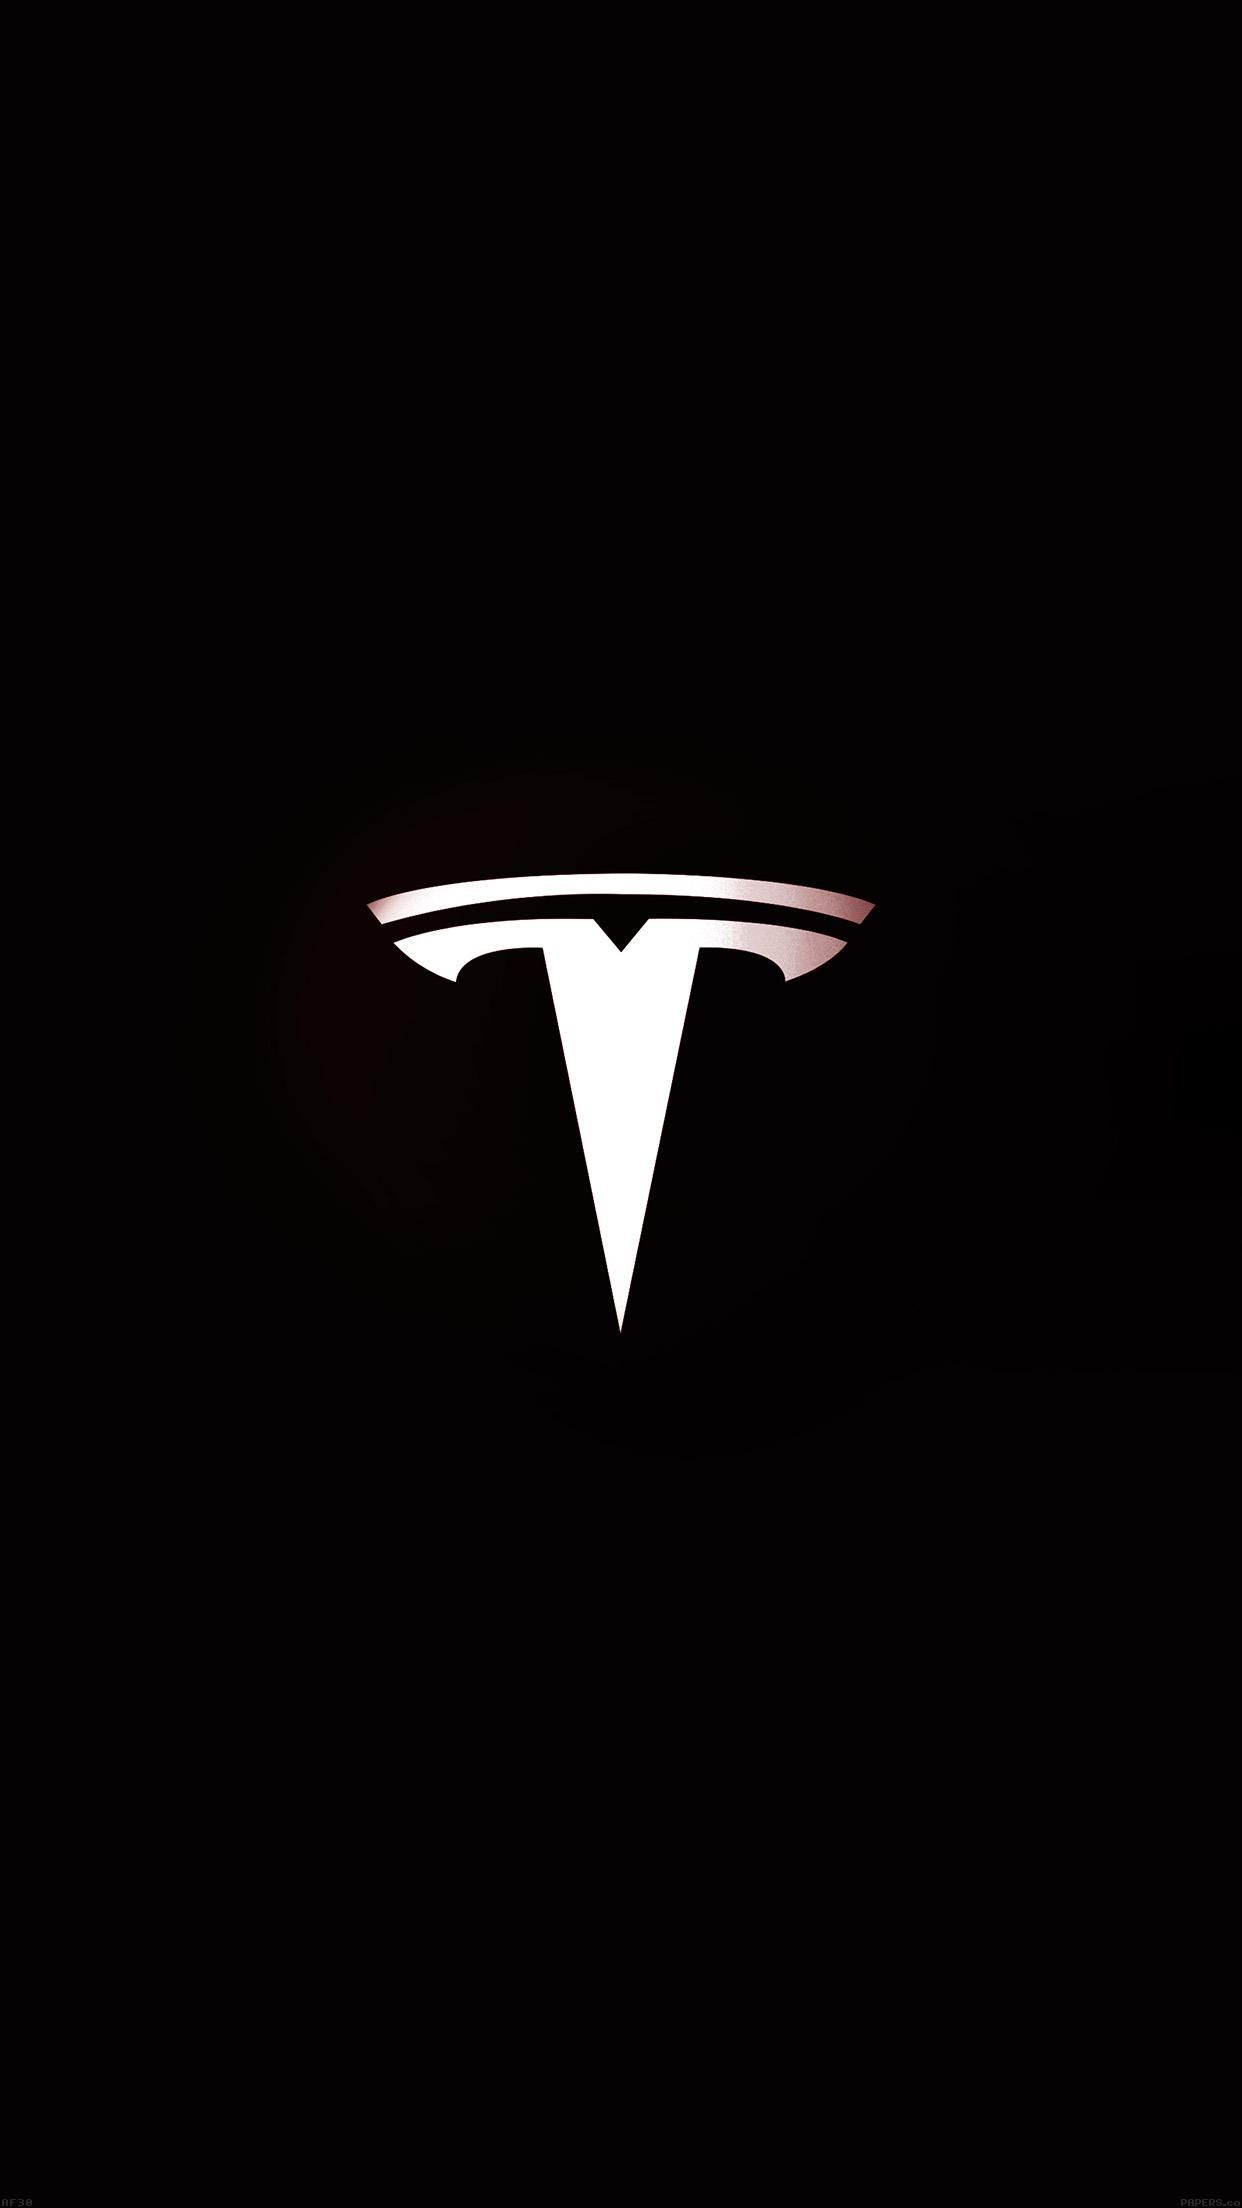 1242x2208 30 units of Tesla Wallpaper | Best Games Wallpapers | Pinterest ...